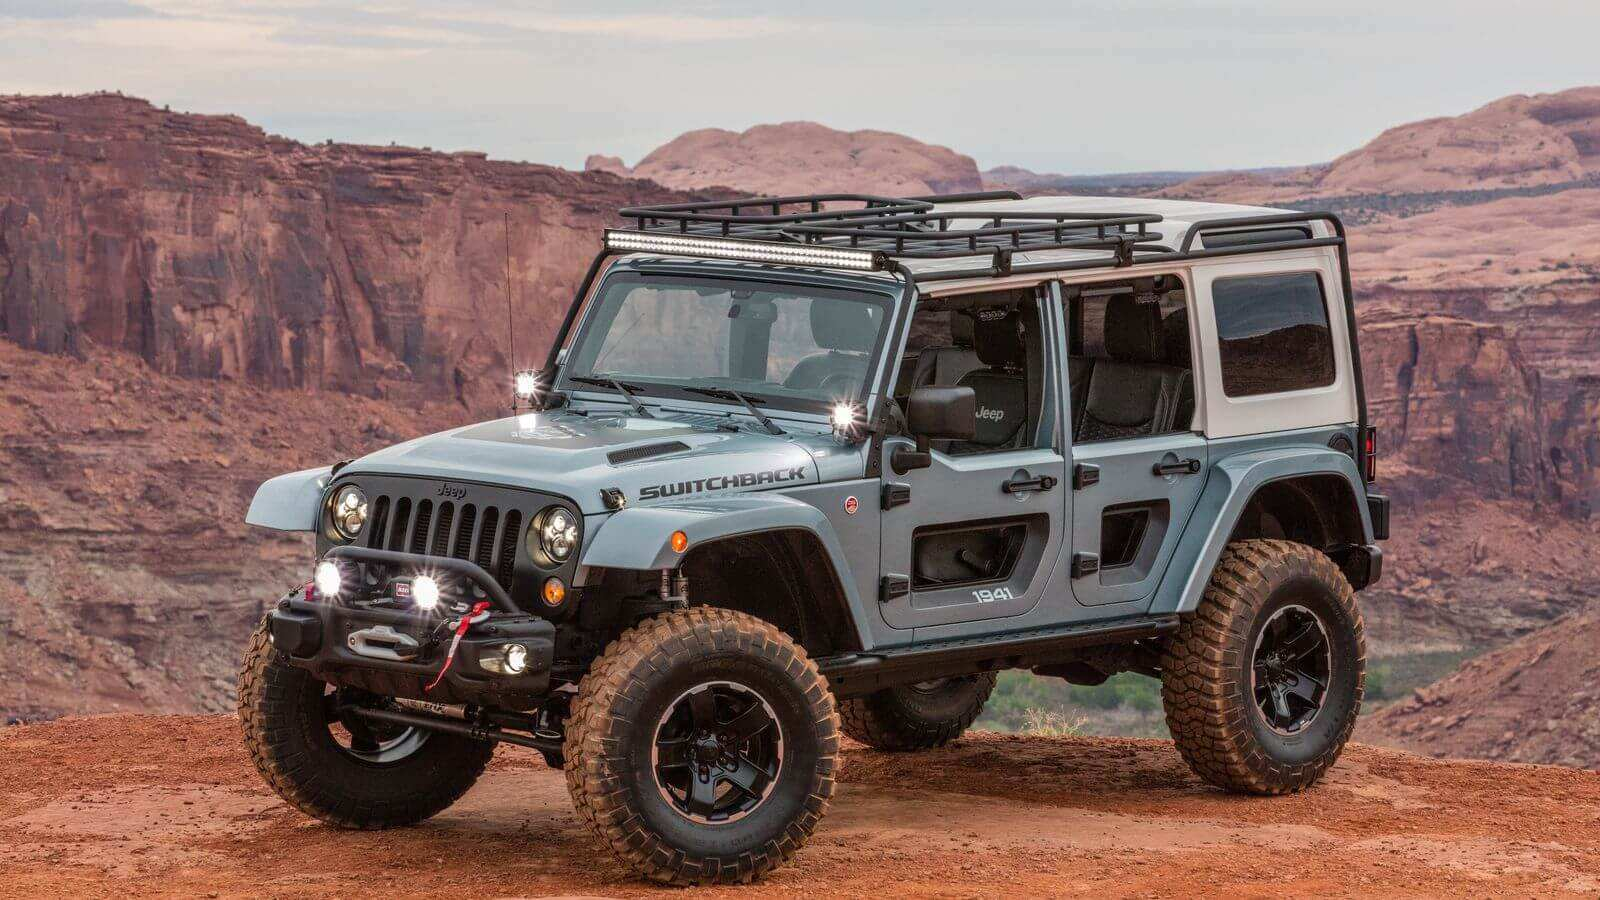 47 Concept of 2020 Jeep Wrangler Diesel Overview with 2020 Jeep Wrangler Diesel